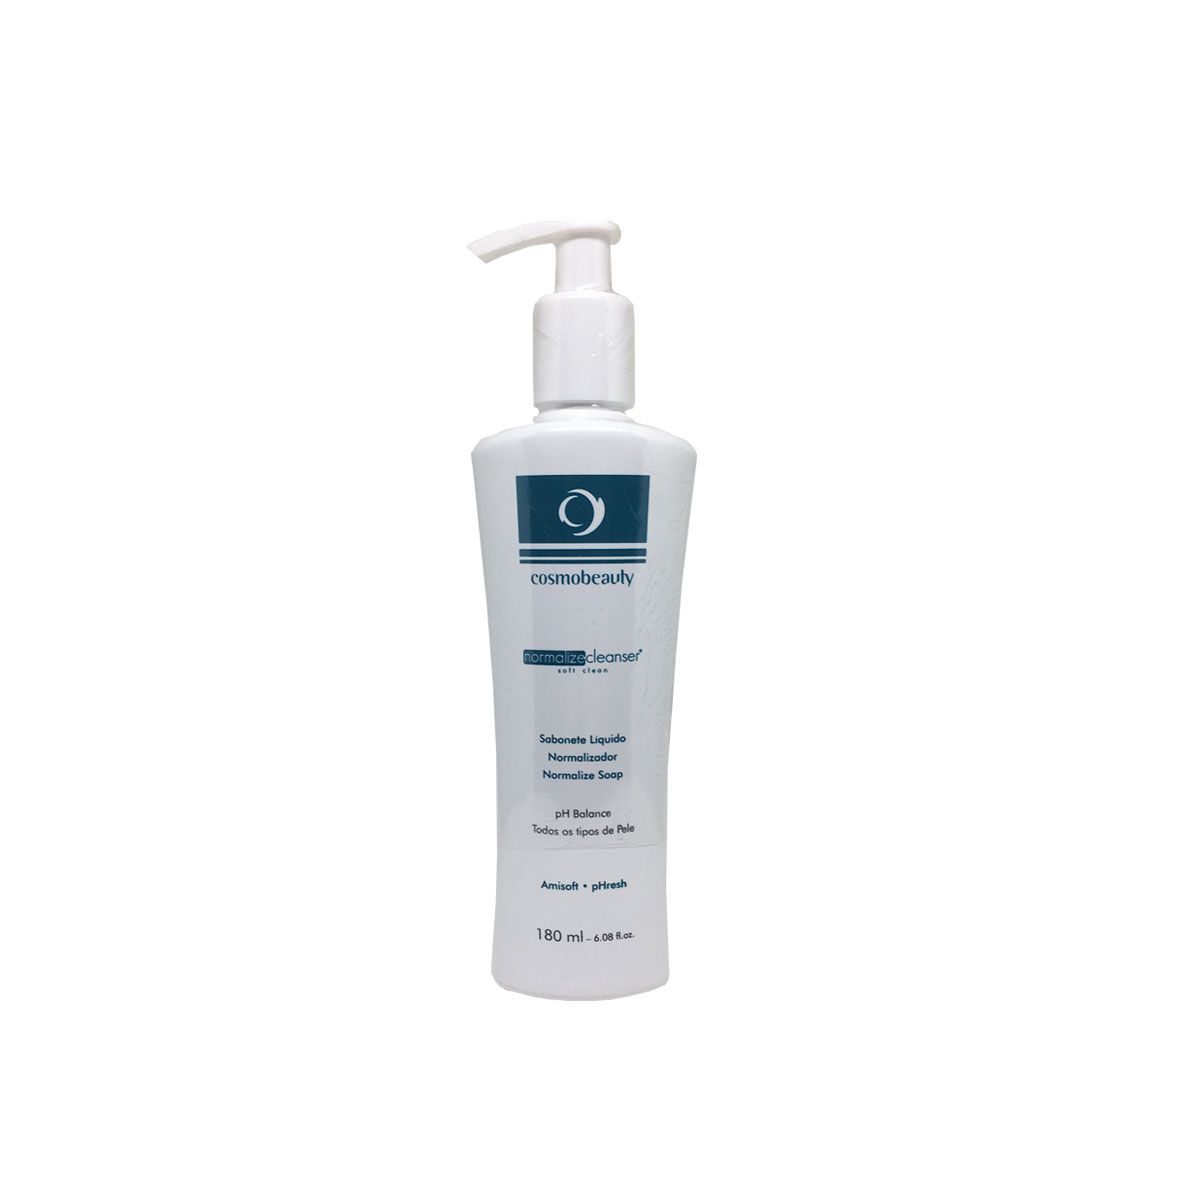 Sabonete Líquido Normalize Cleanser - 180ml